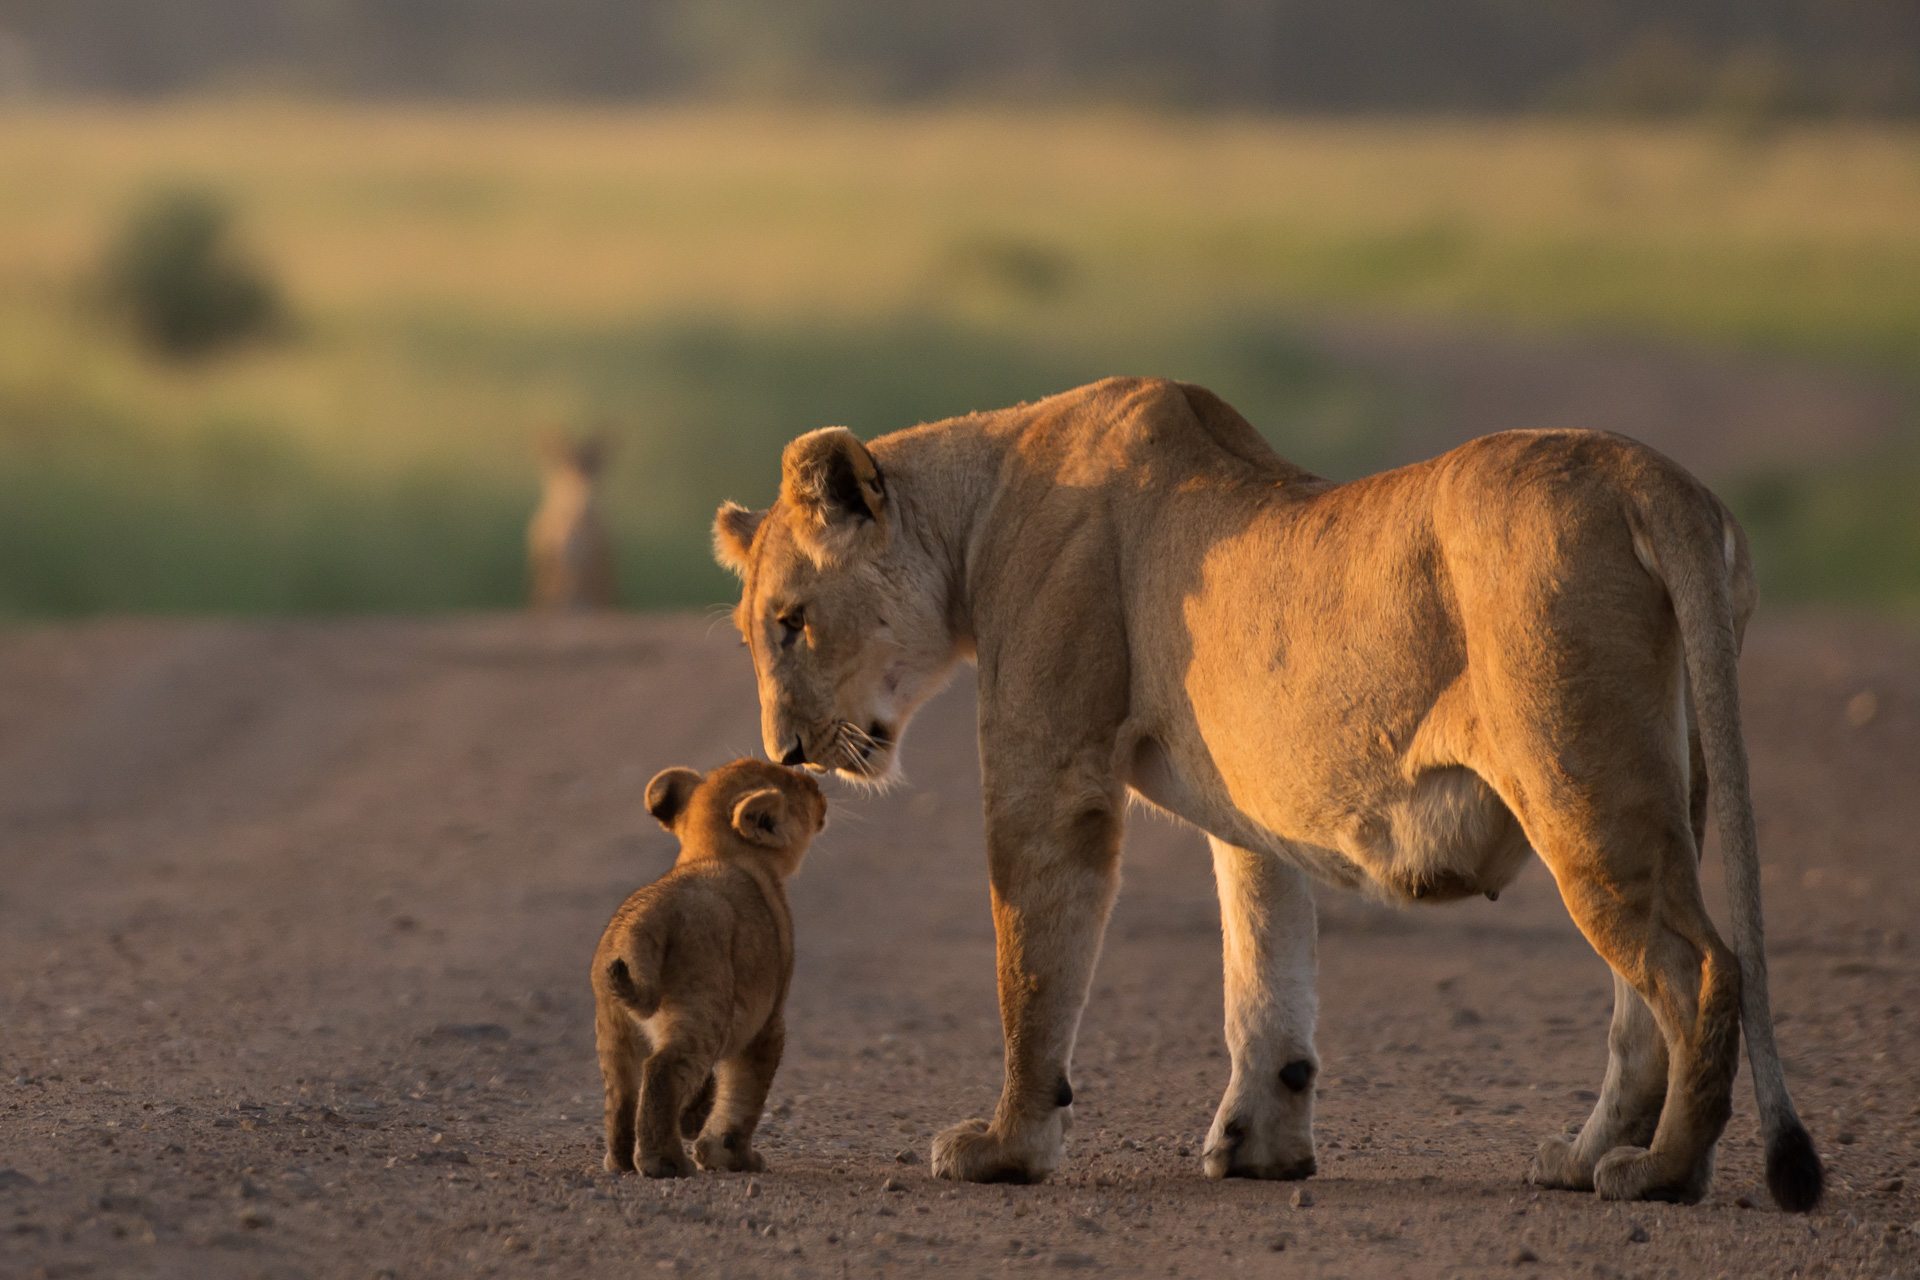 Lioness and cub touching faces